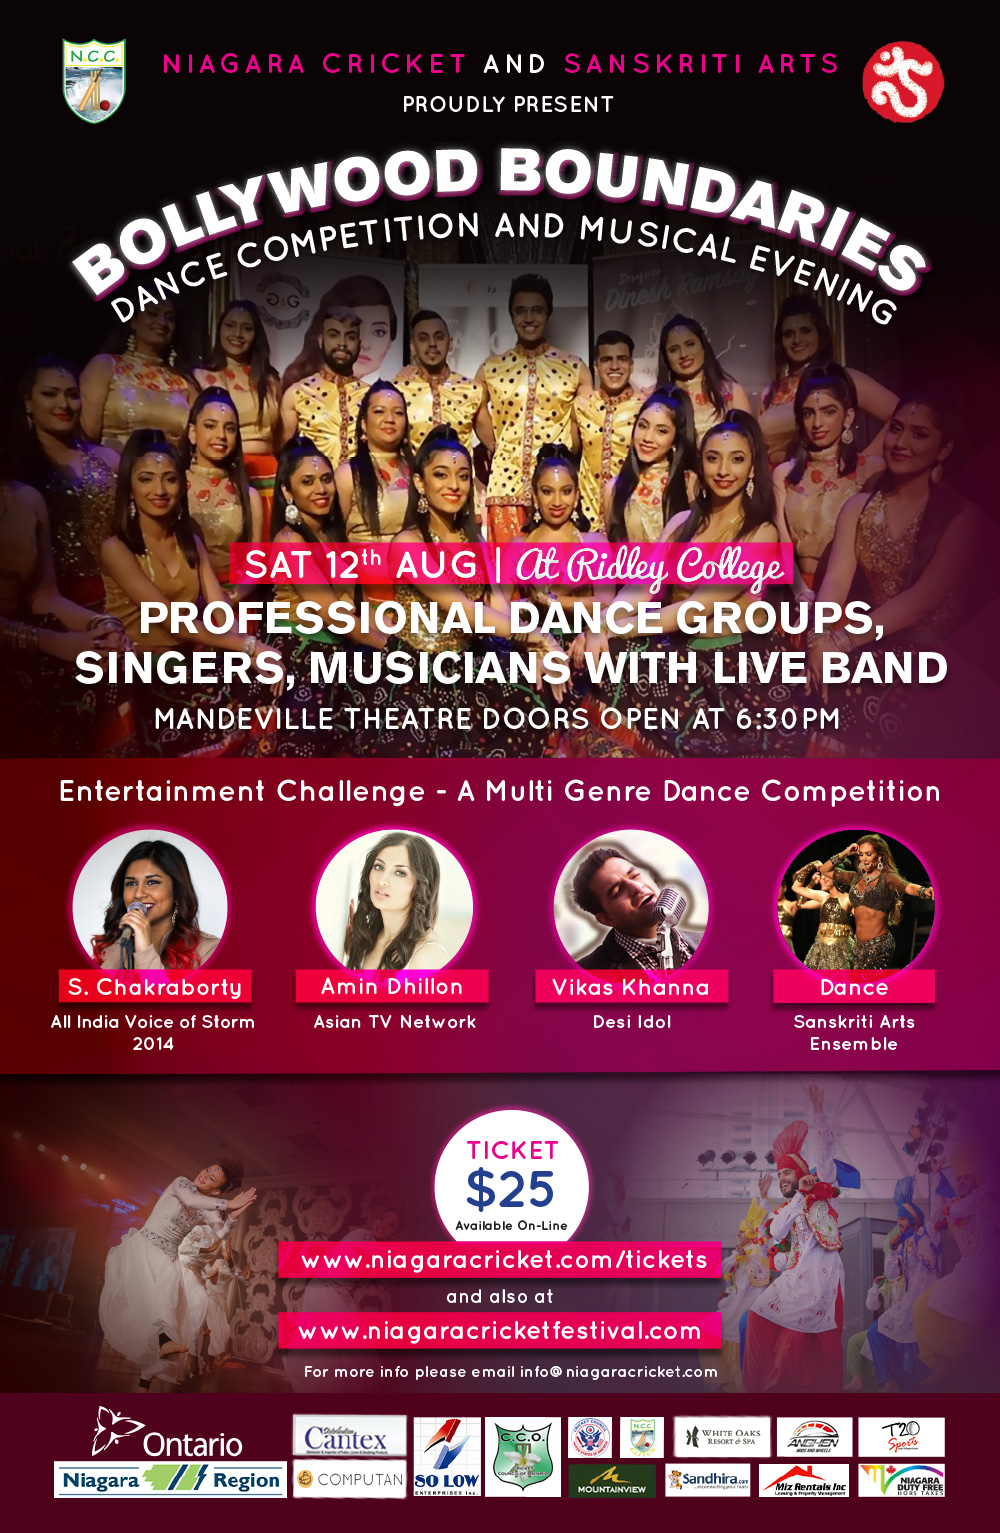 Bollywood Boundaries - Dance and Musical Evening